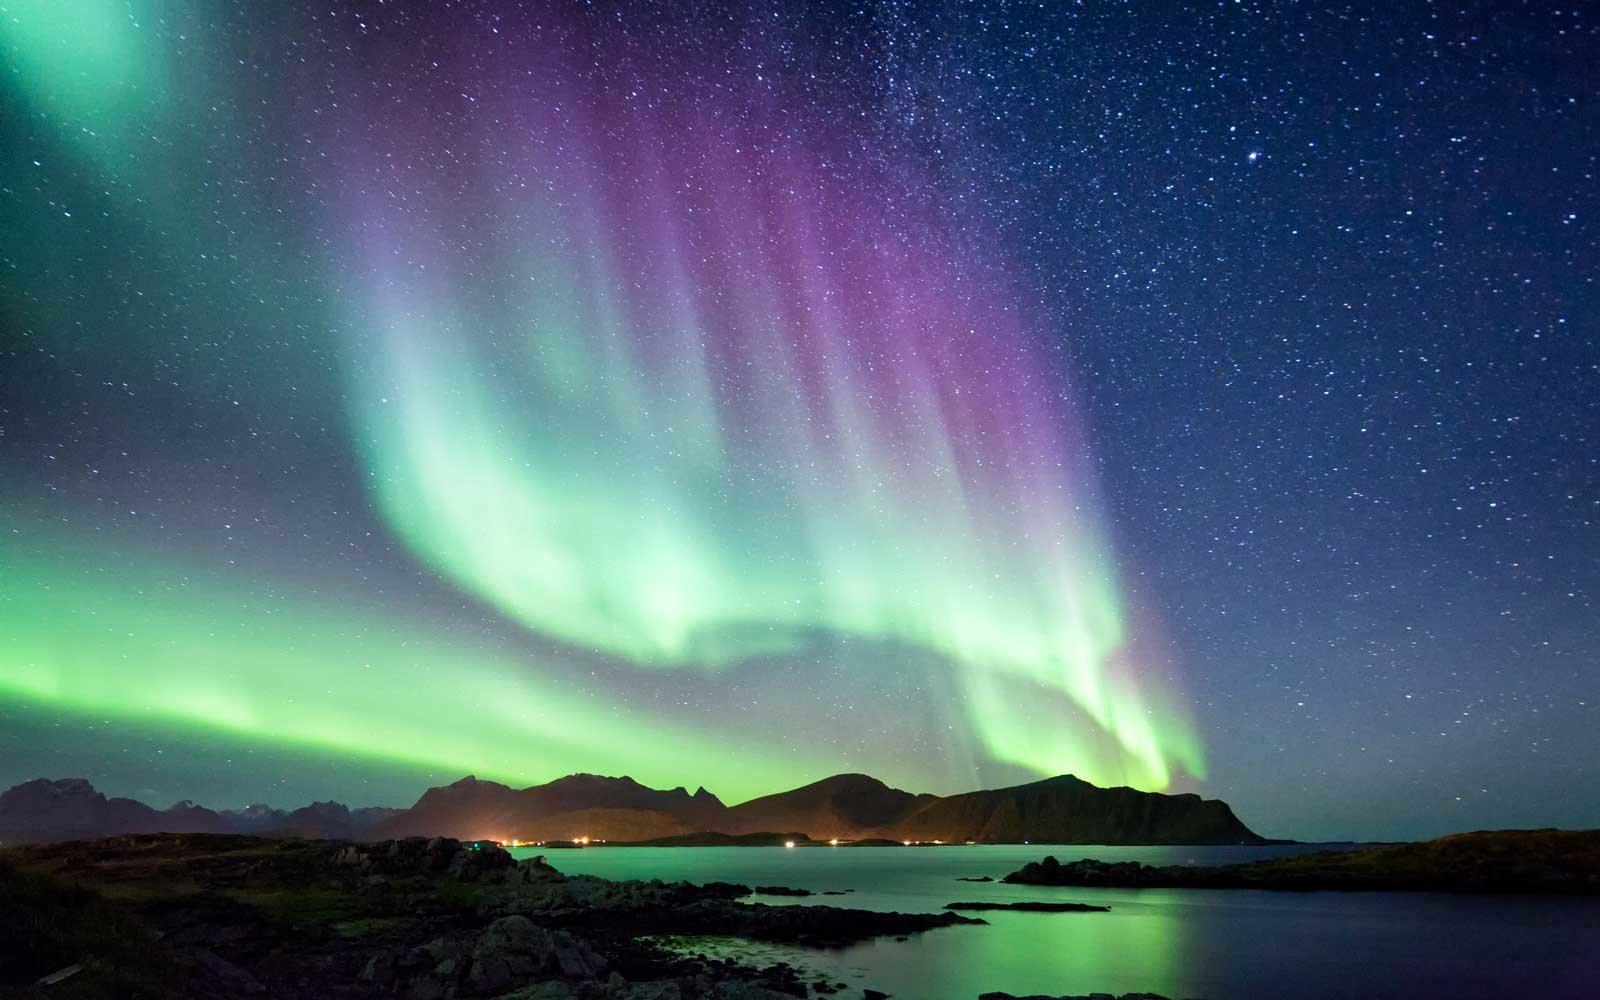 View of the Northern Lights in Lofoten Islands, Norway